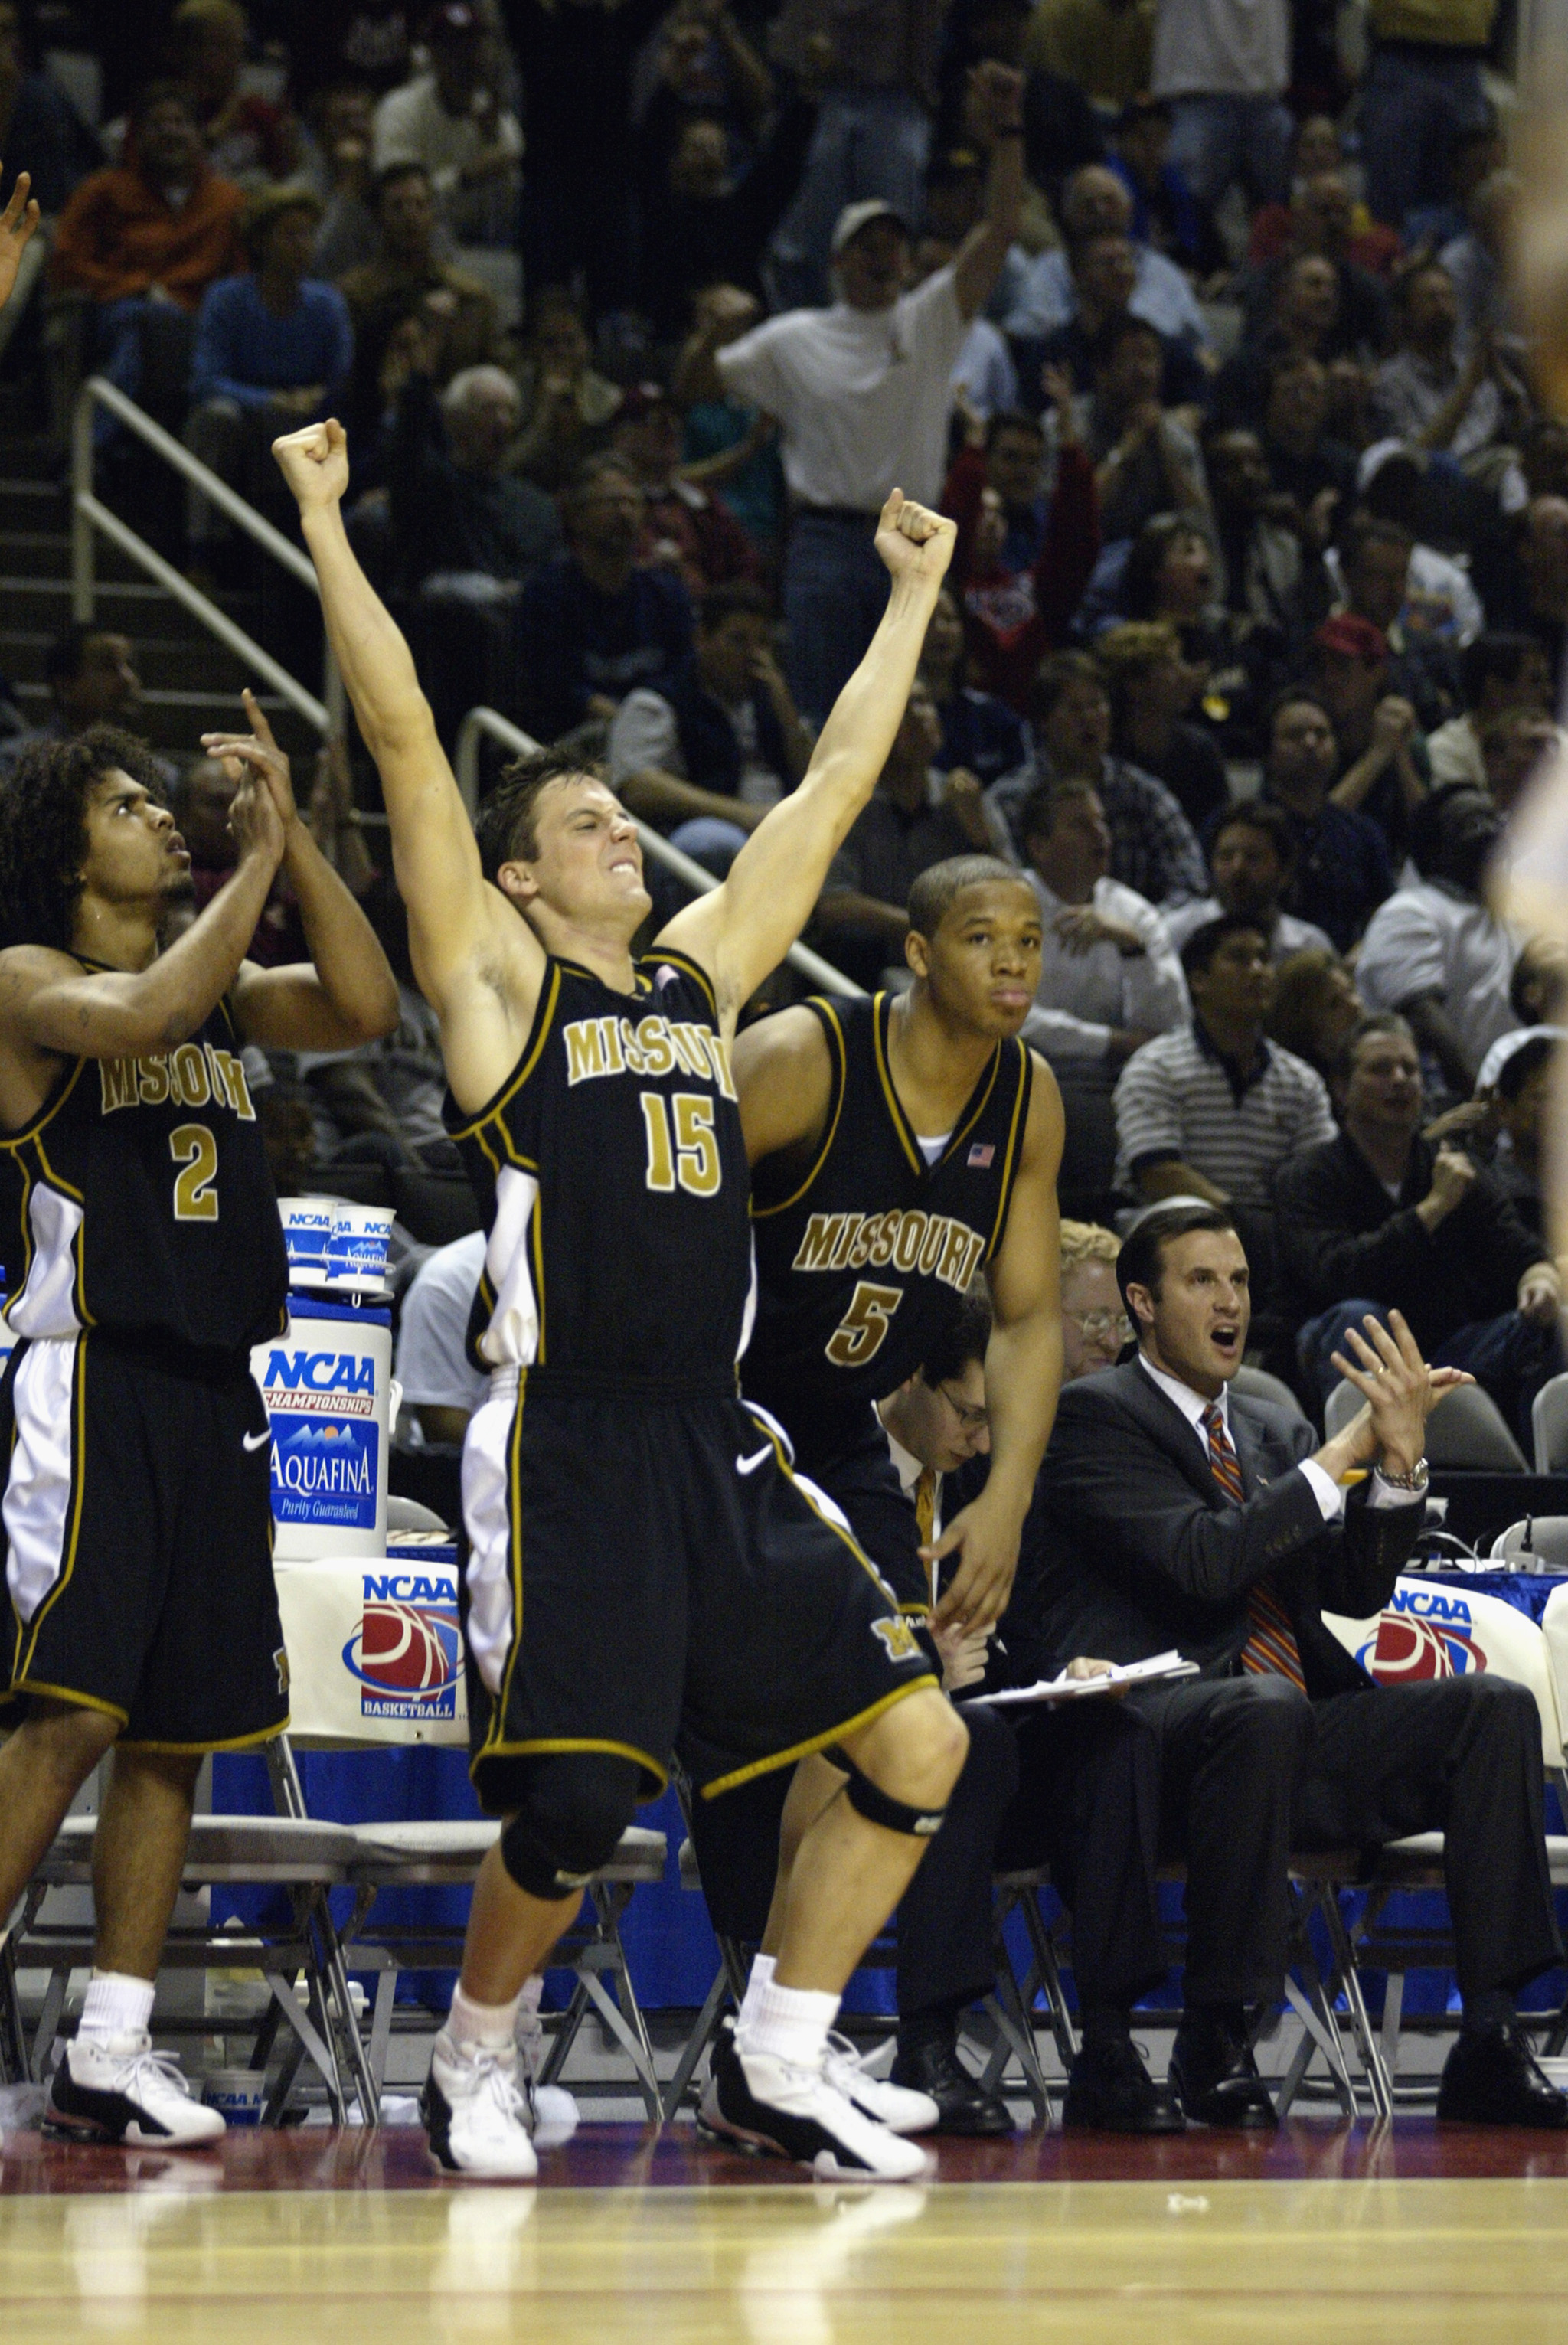 SAN JOSE, CA - MARCH 21:  Josh Kroenke #15 of the Missouri Tigers celebrates the win over the UCLA Bruins during the West Regional Semifinal Game of the 2002 NCAA Basketball Tournament on March 21, 2002 at Compaq Center in San Jose, California.  The Tiger